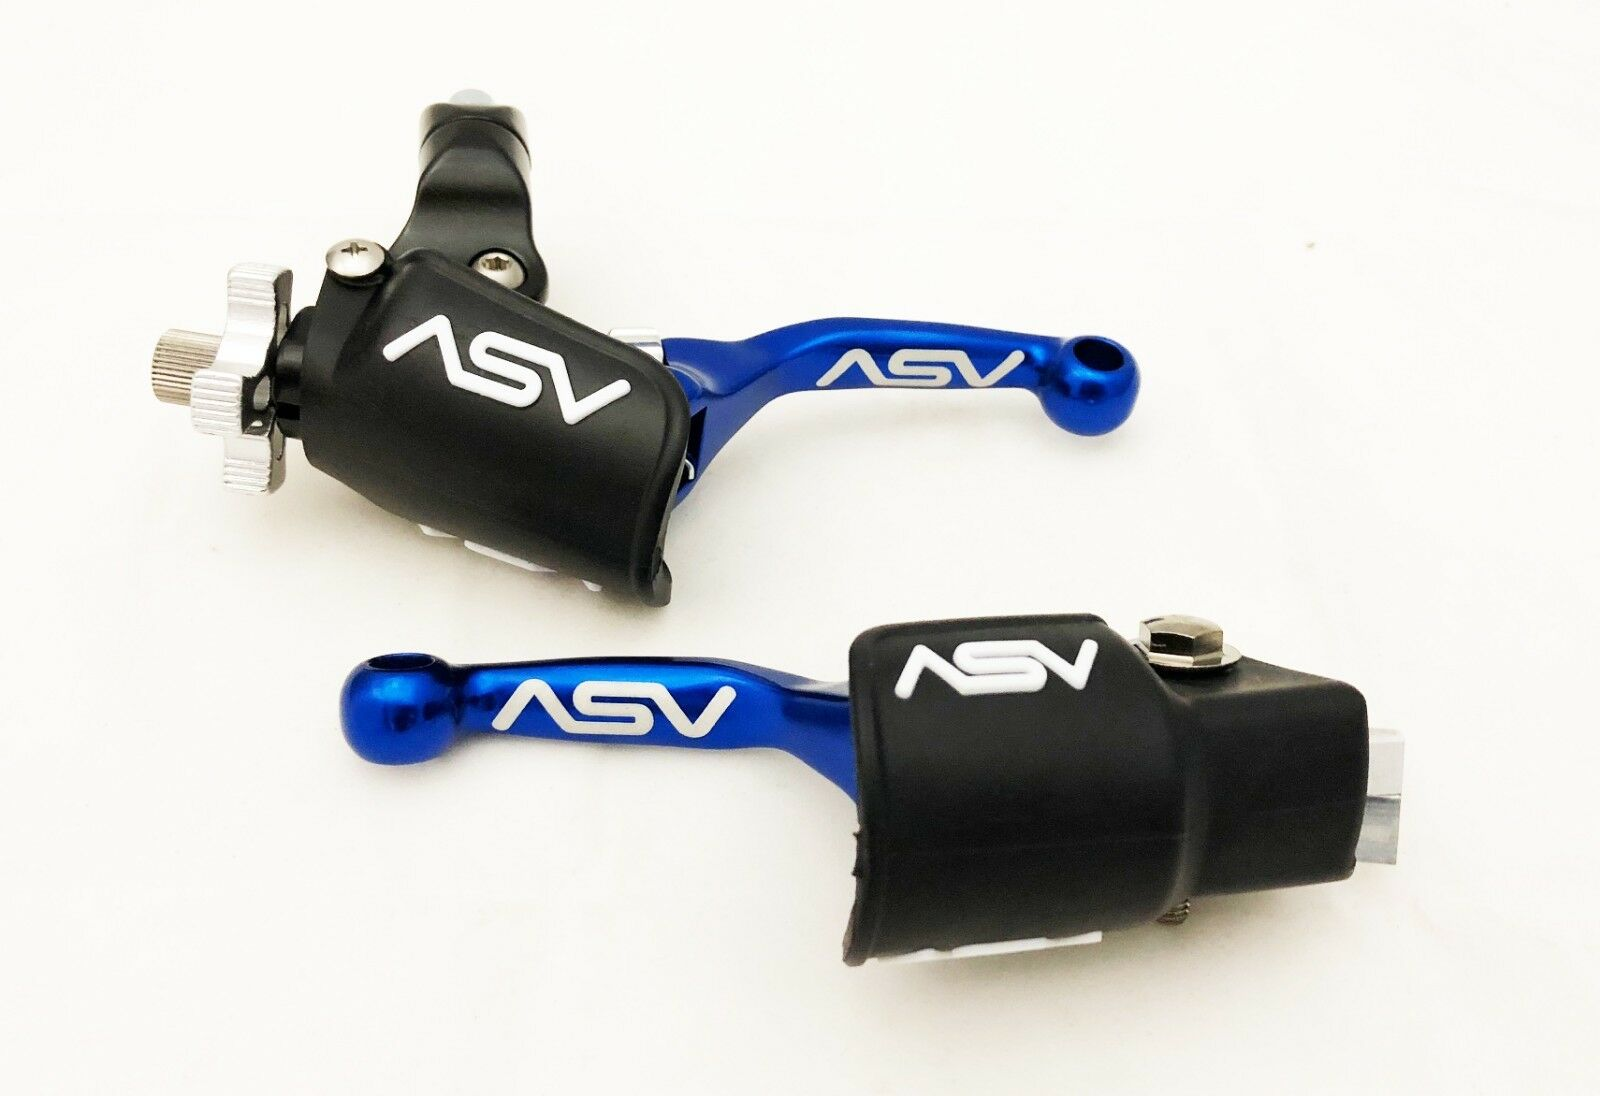 ASV Unbreakable F4 Blau Shorty Clutch Brake Lever Hot Dustproof CR CRF XR